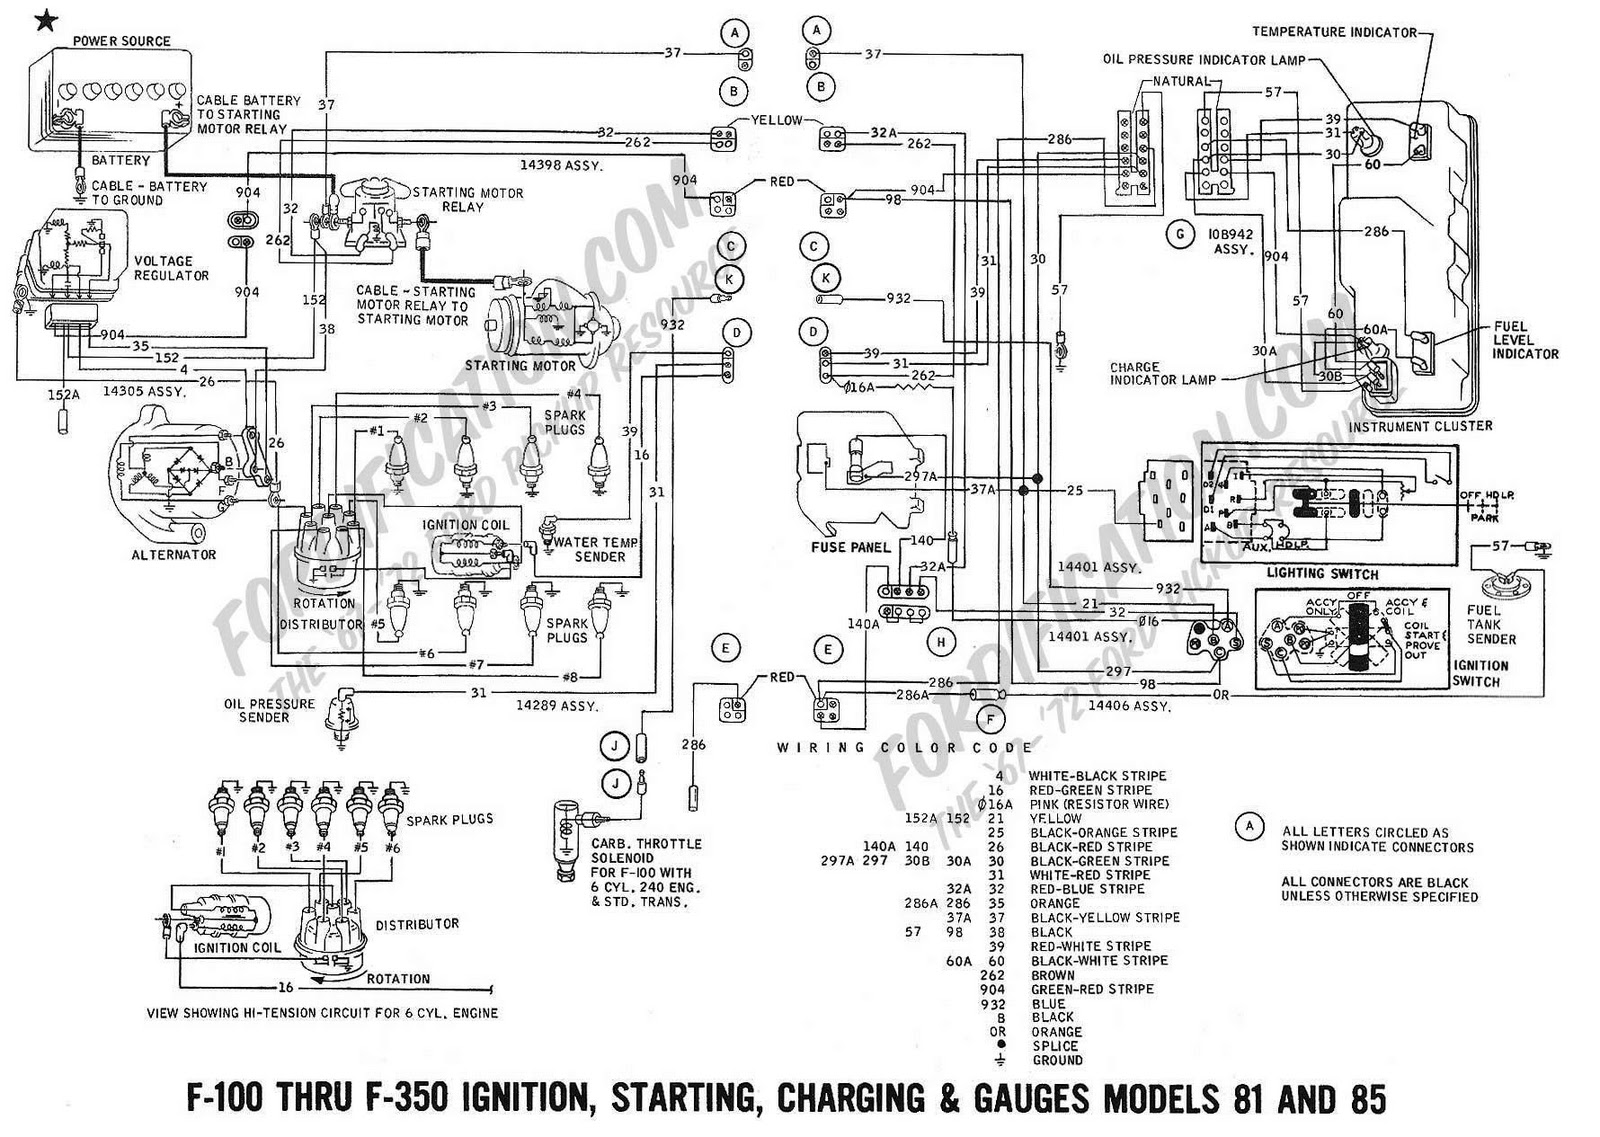 1996 peterbilt wiring diagram  1996  free wiring diagrams